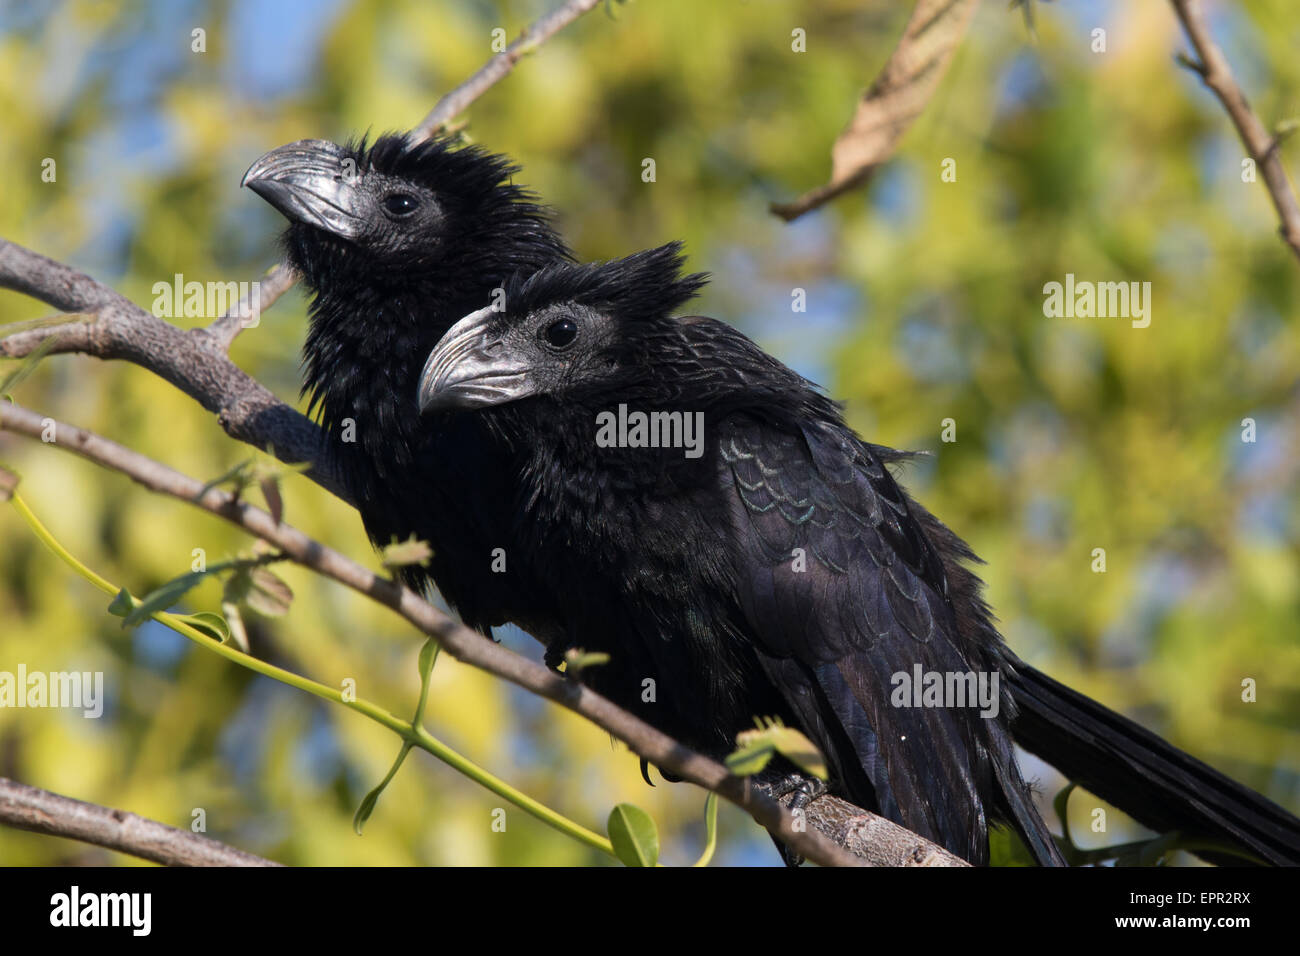 pair of Groove-billed Anis (Crotophaga sulcirostris) - Stock Image